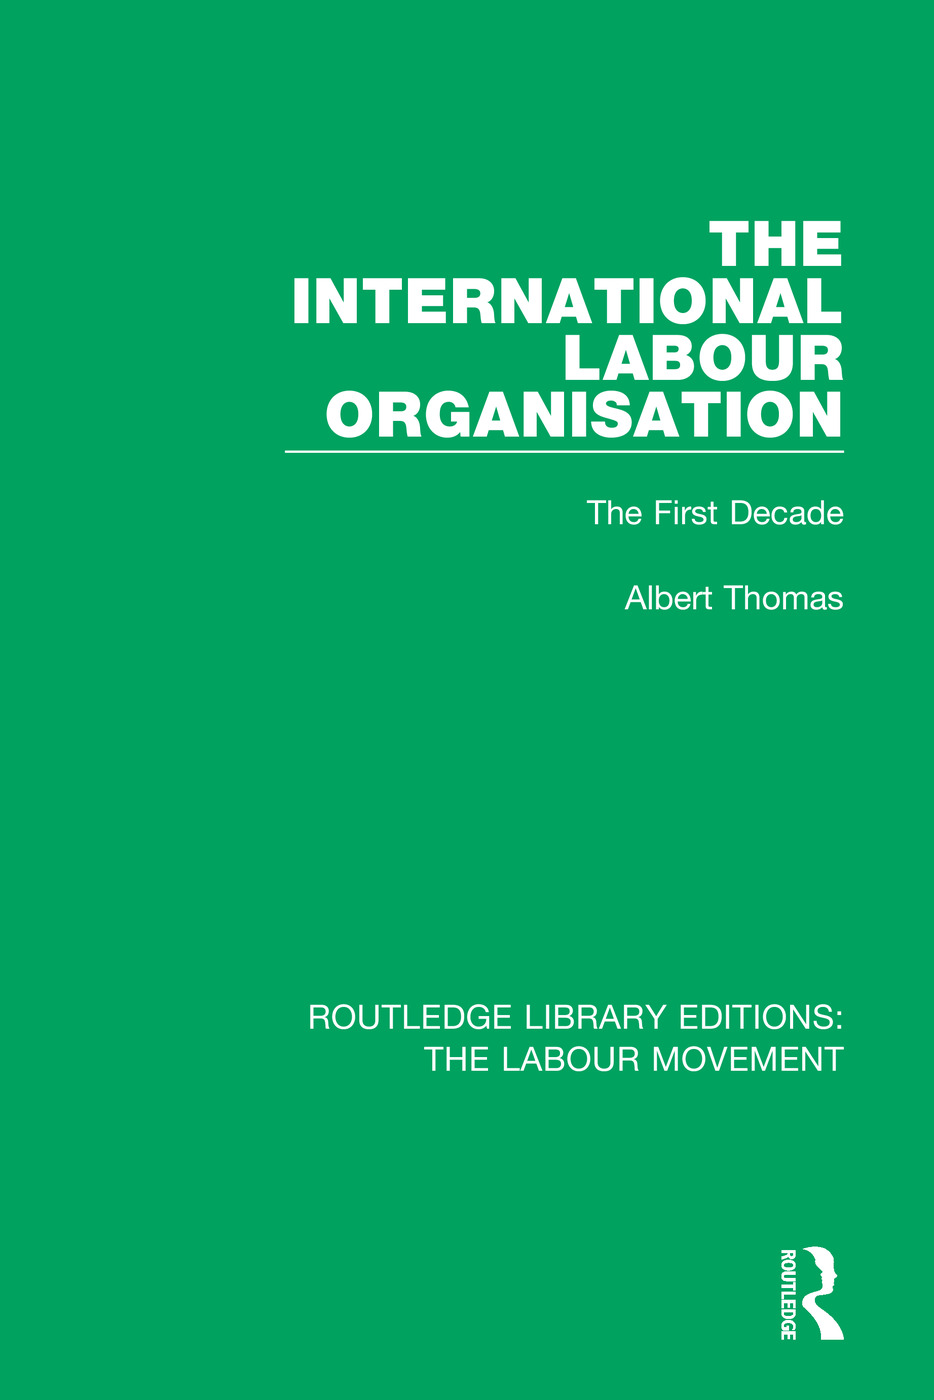 The International Labour Organisation: The First Decade book cover